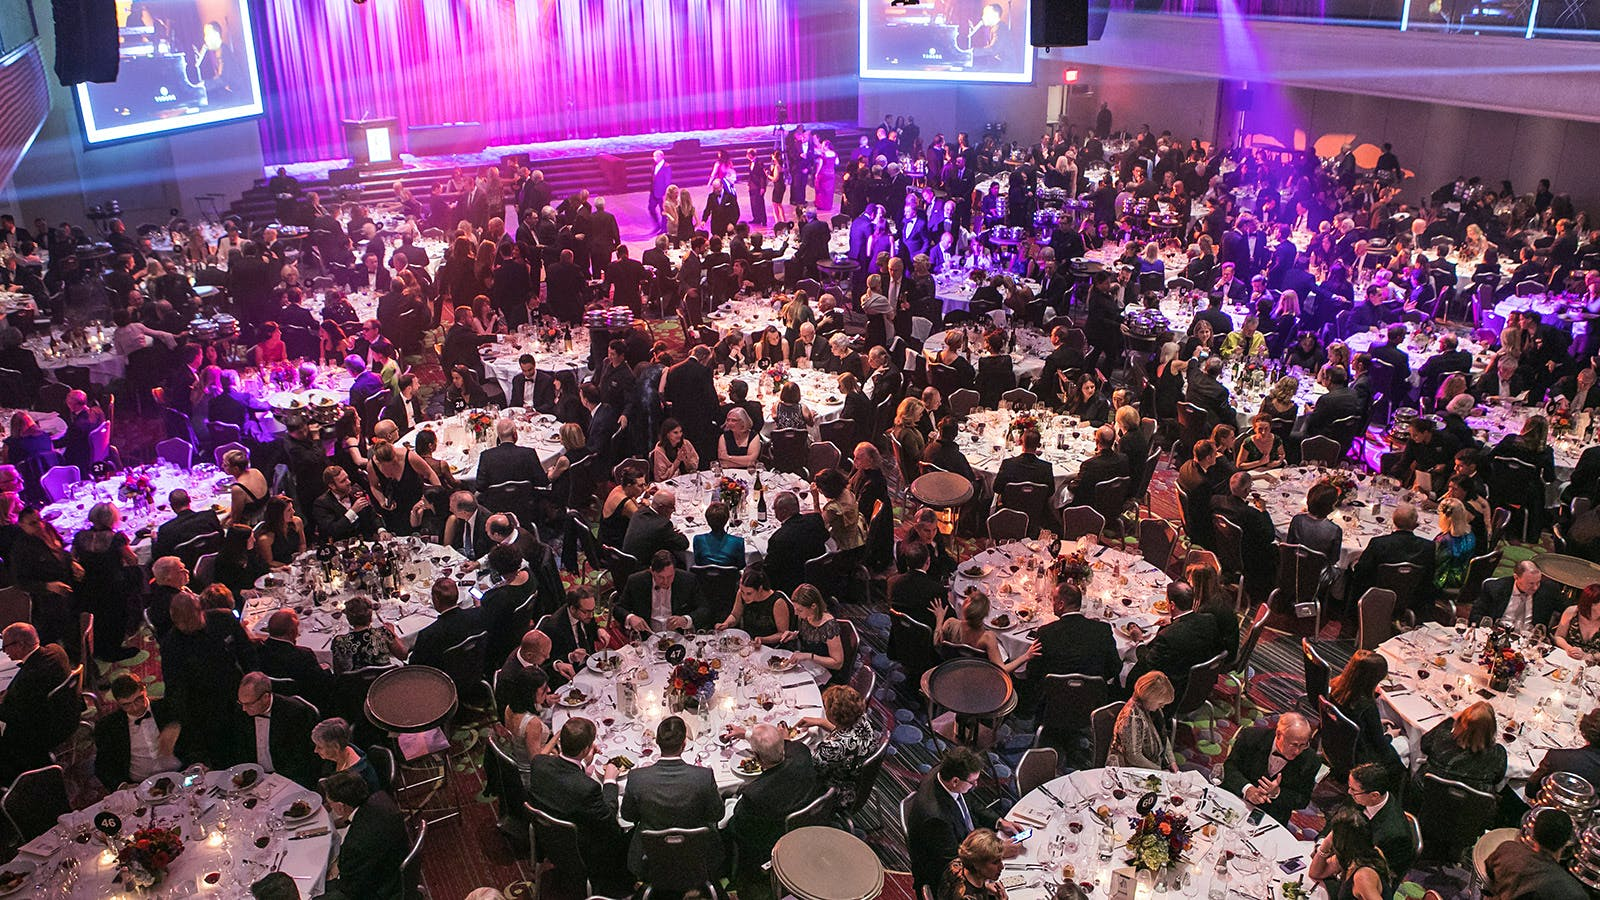 Grand Award Banquet: Celebrating the Best of Wine